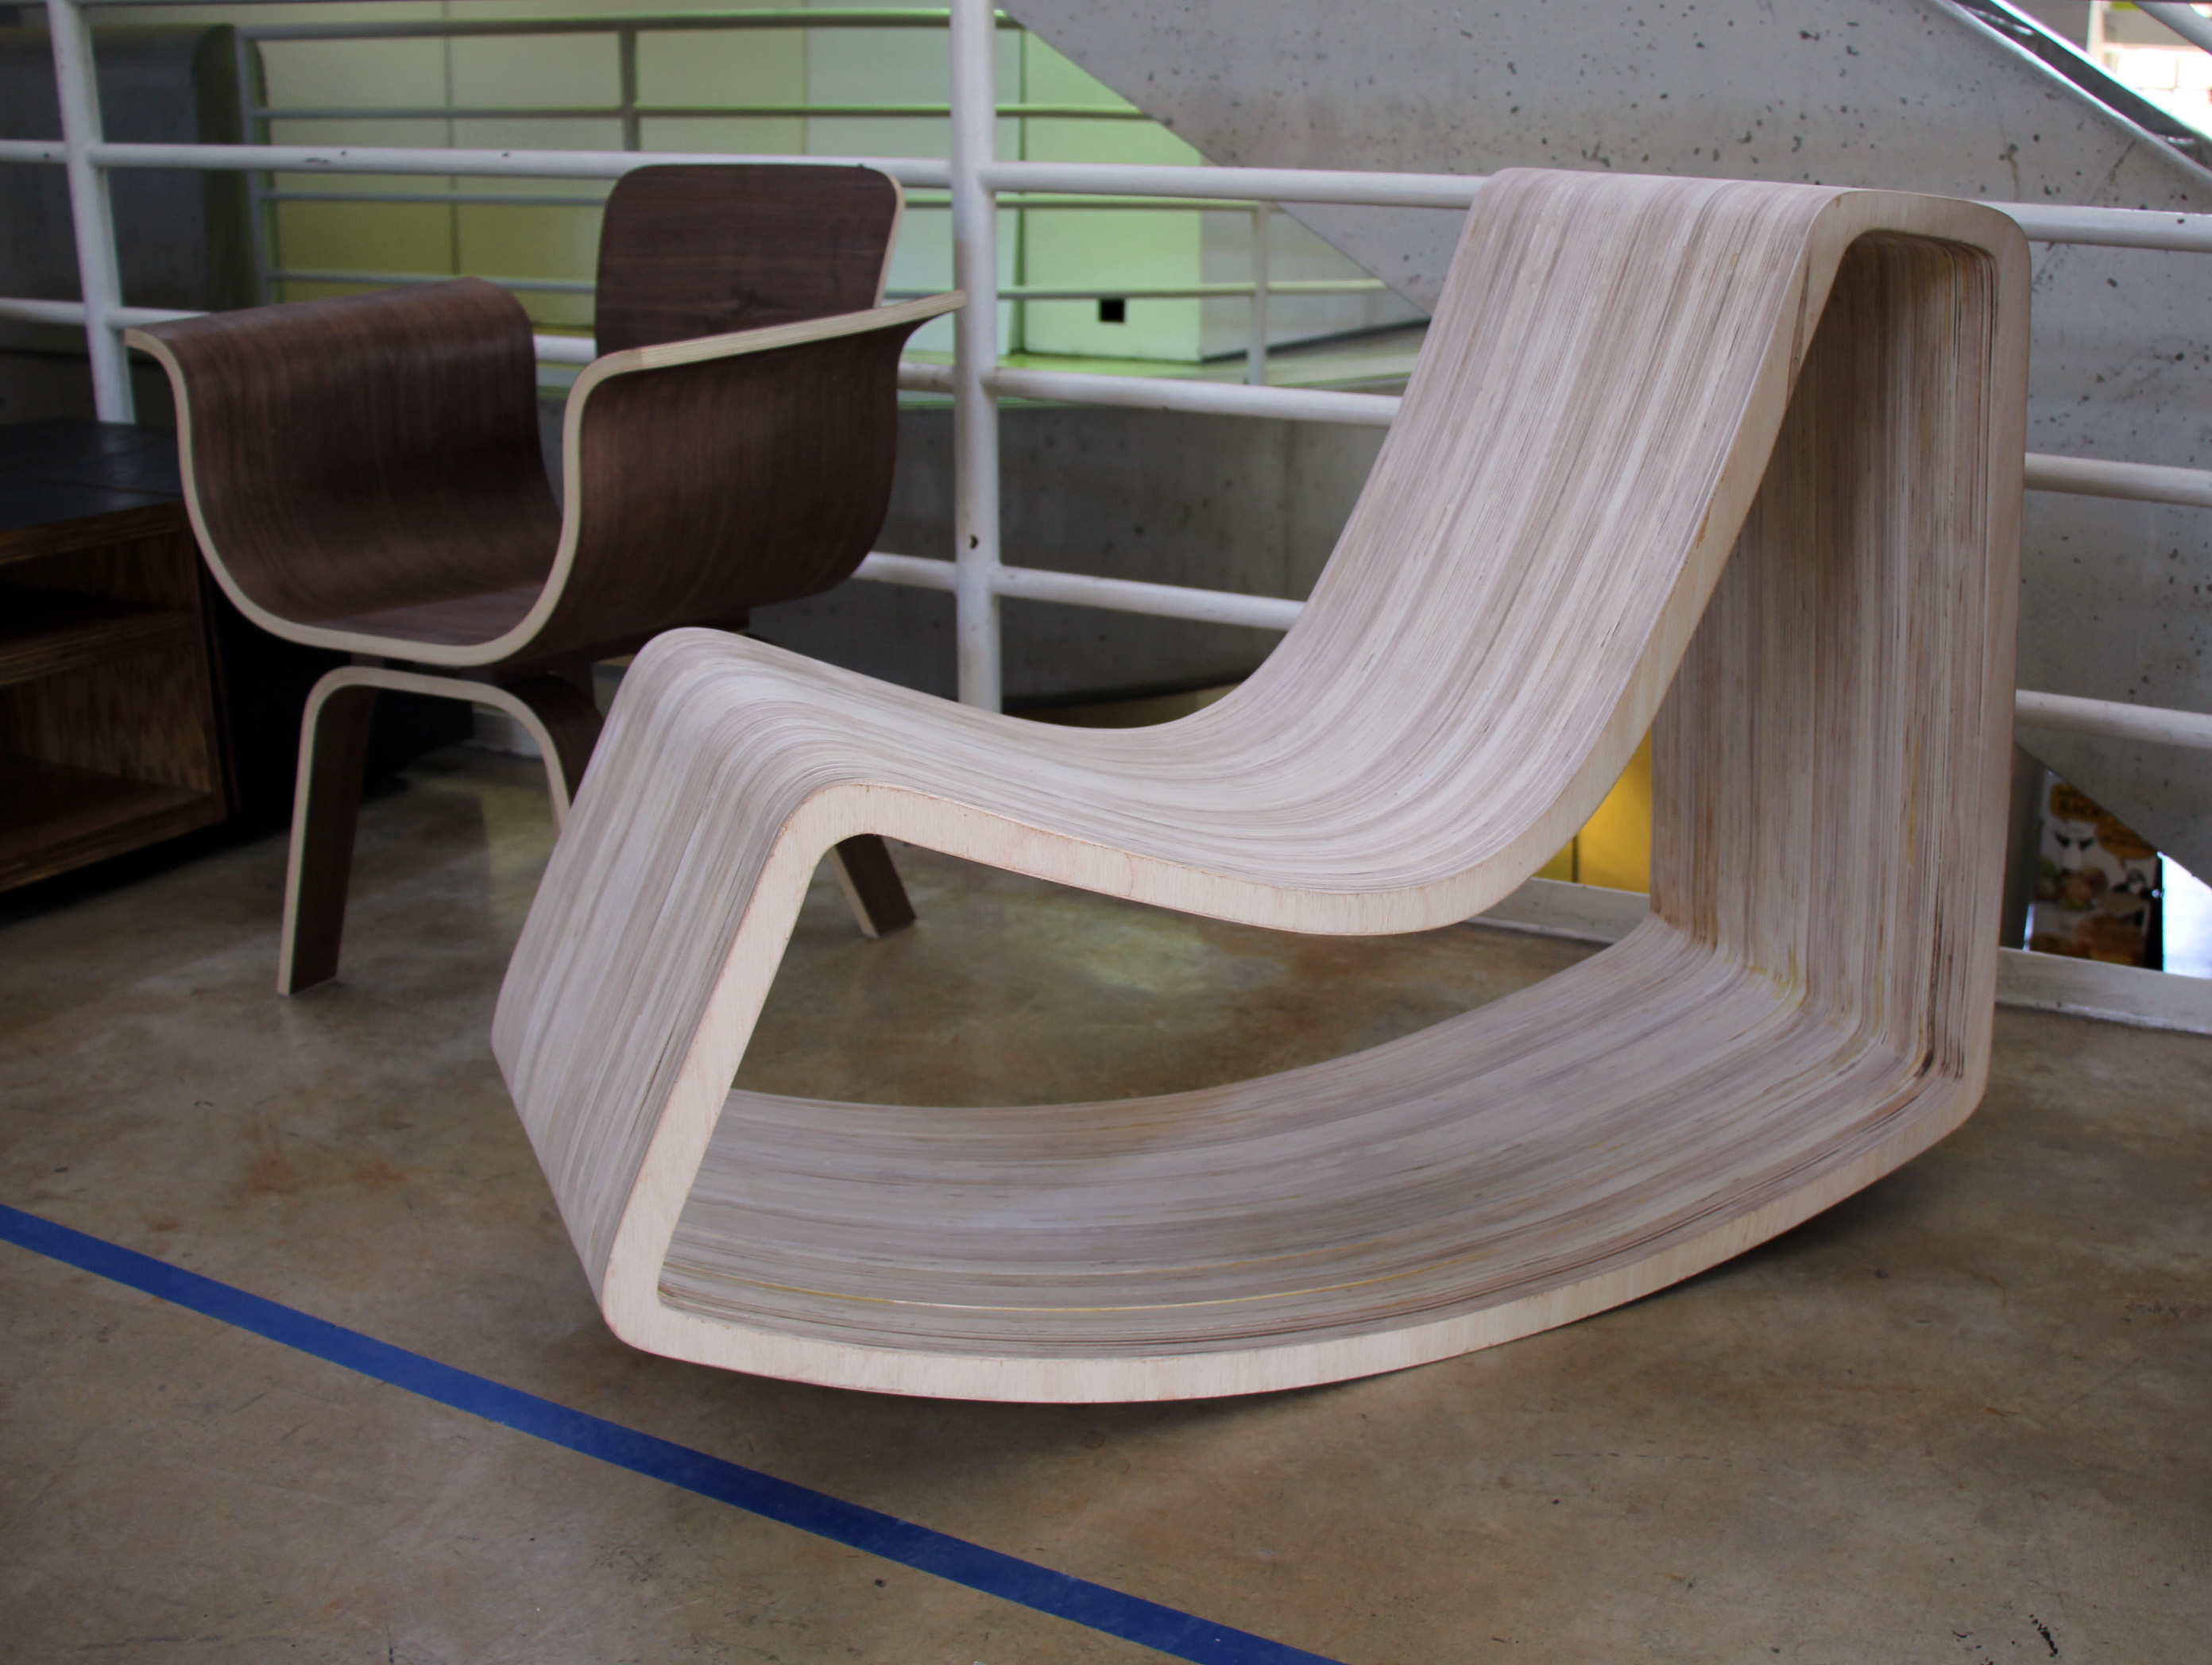 chair design course kids covers work of furniture class ut college